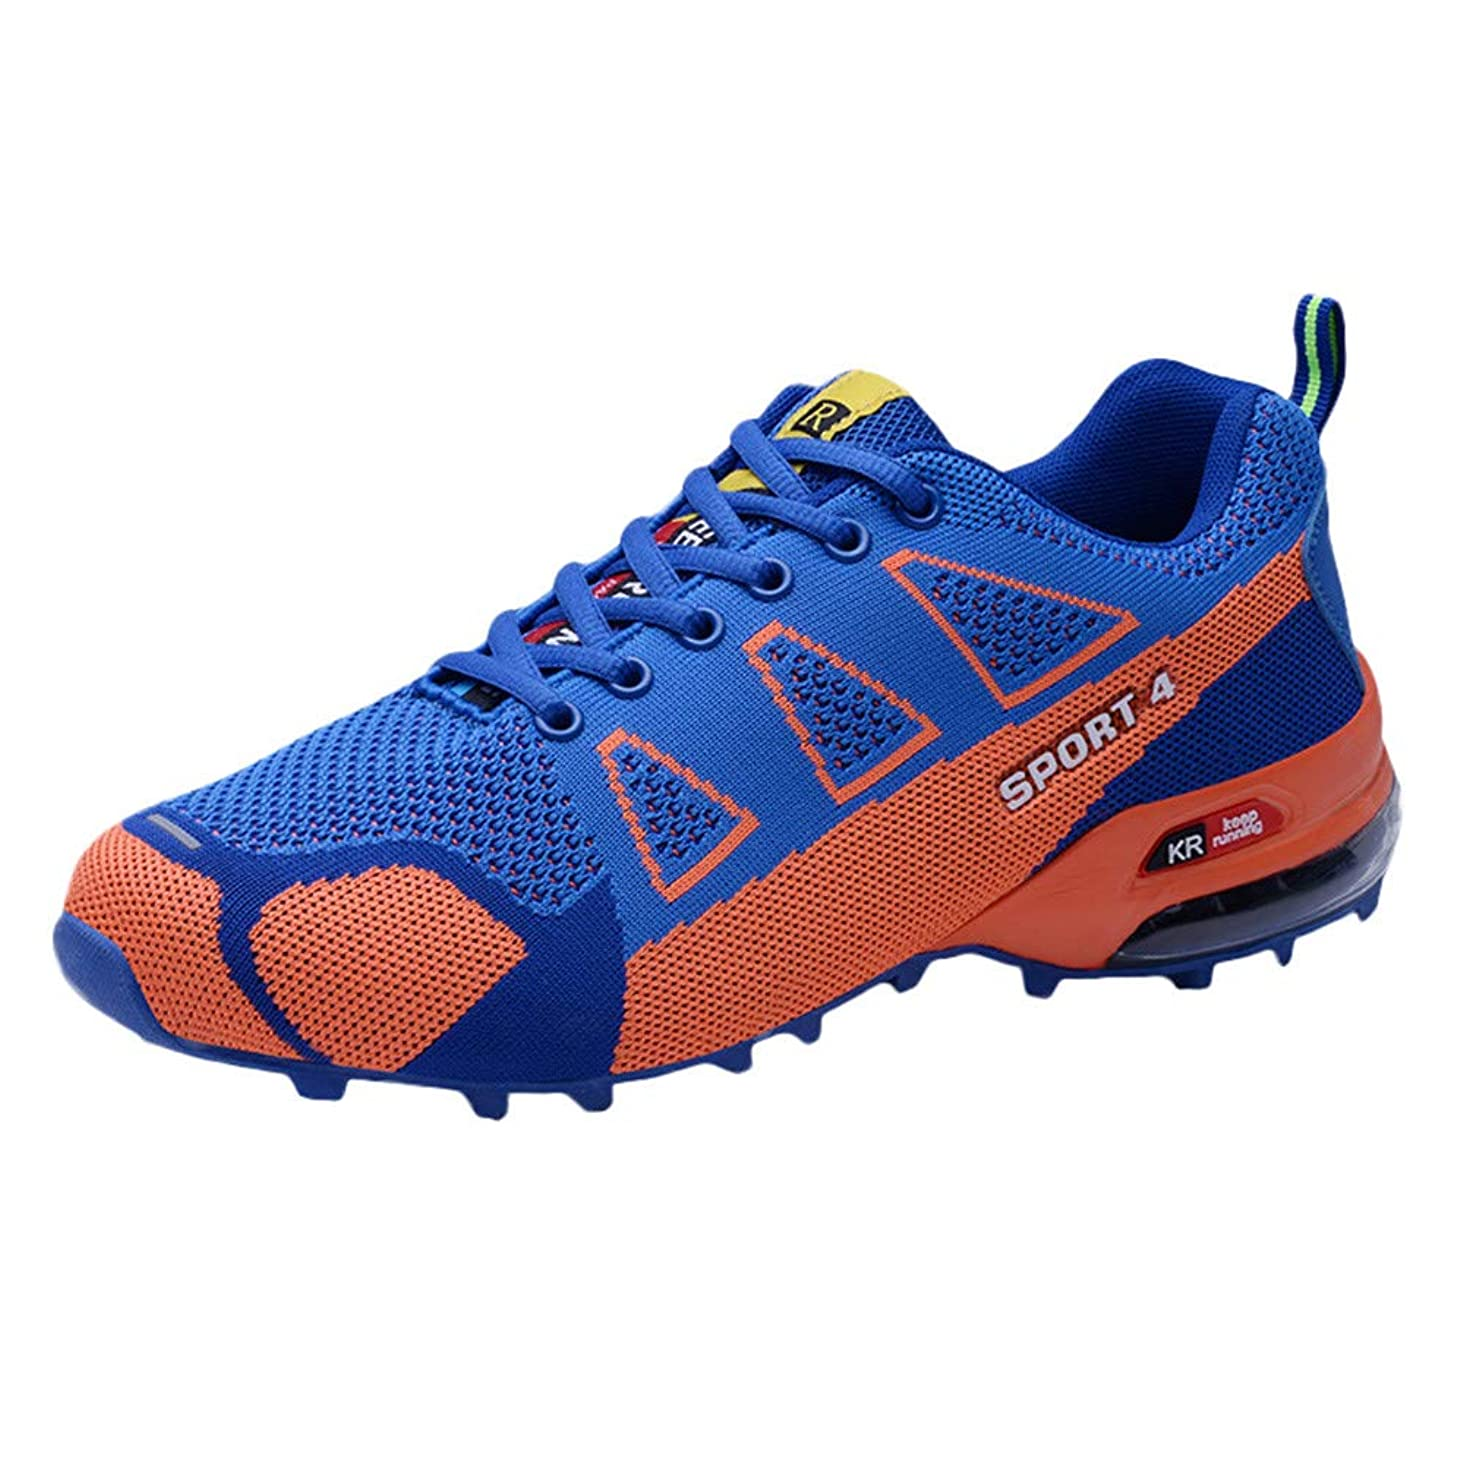 Realdo Mens Casual Outdoor Hiking Shoe Lightweight Breathable Lace-up Sneakers